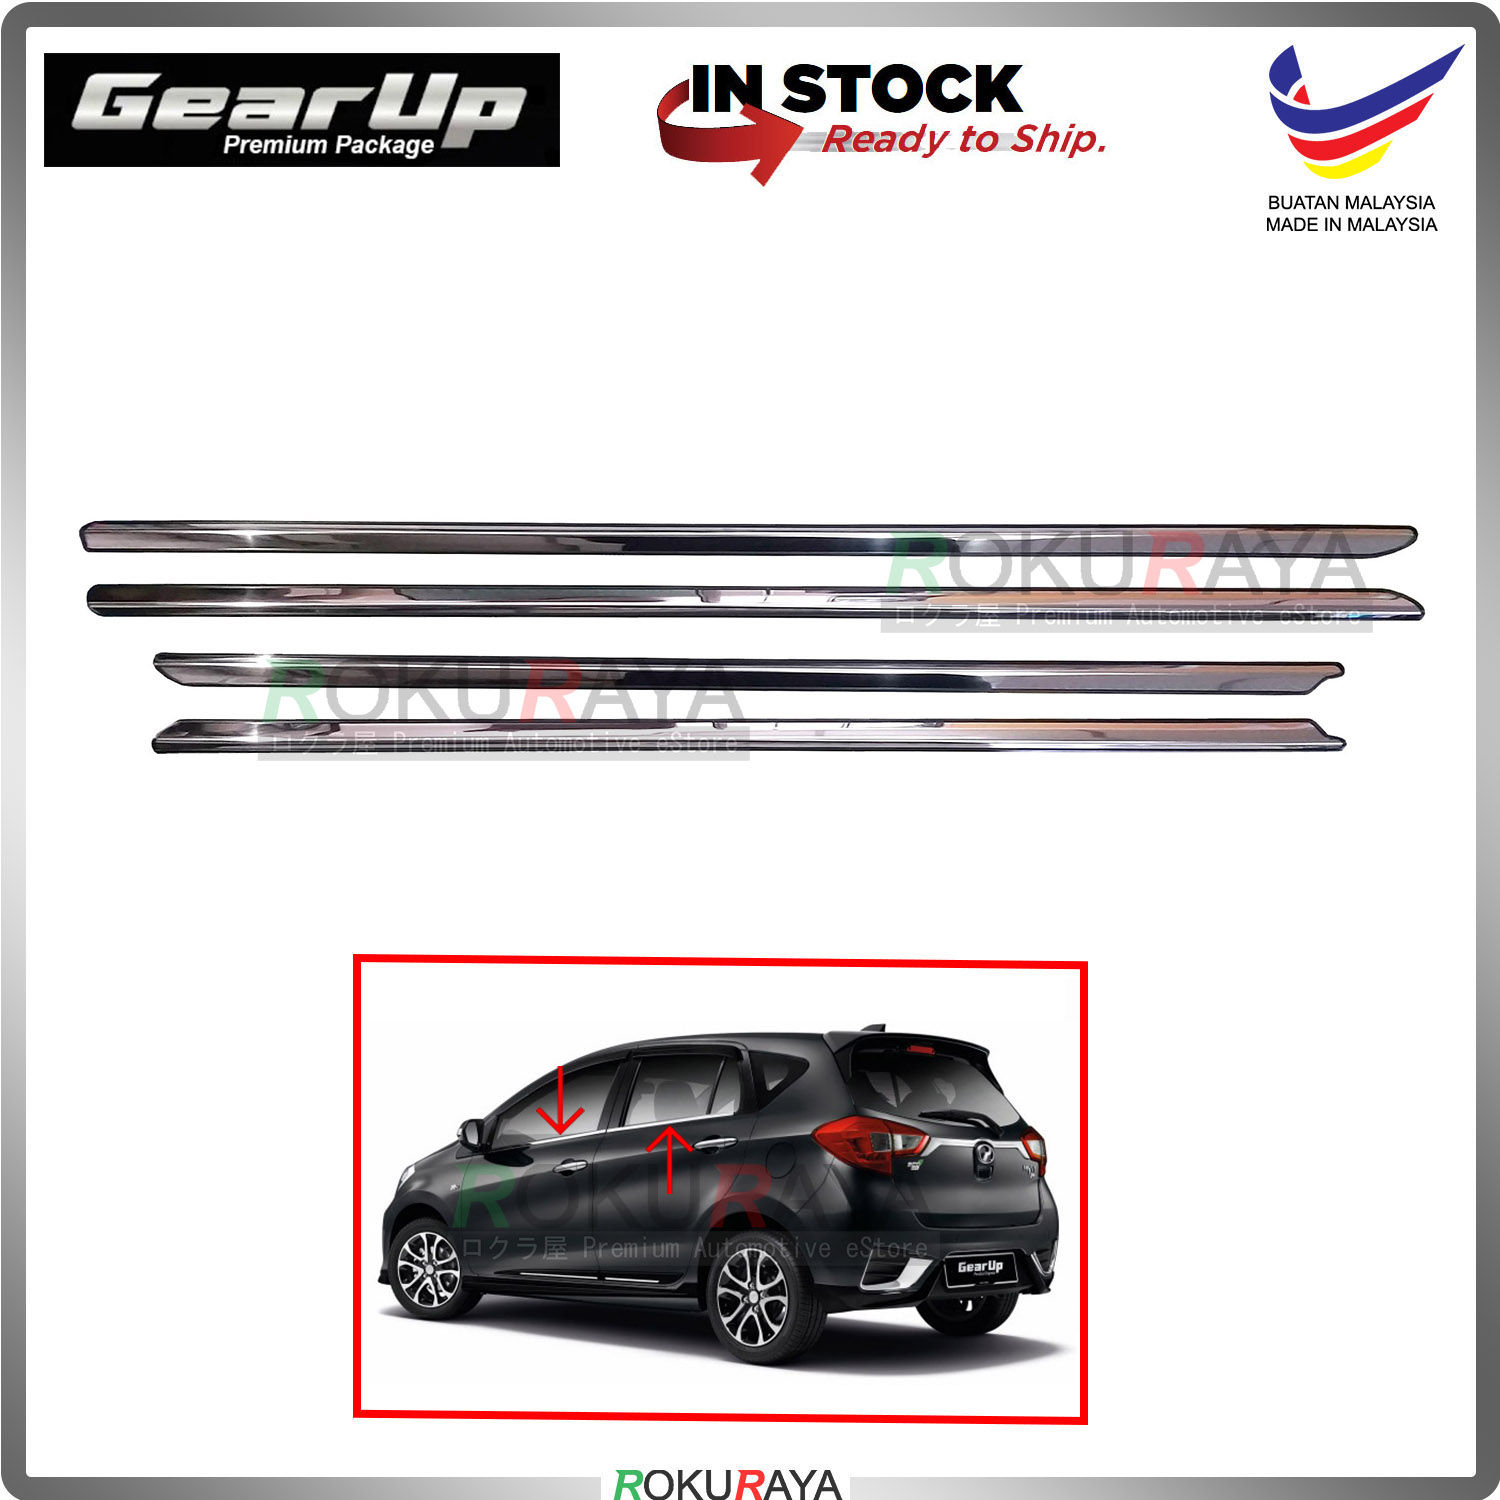 Perodua Myvi (3rd Gen) 2018 Gear Up Door Window Trim Panel